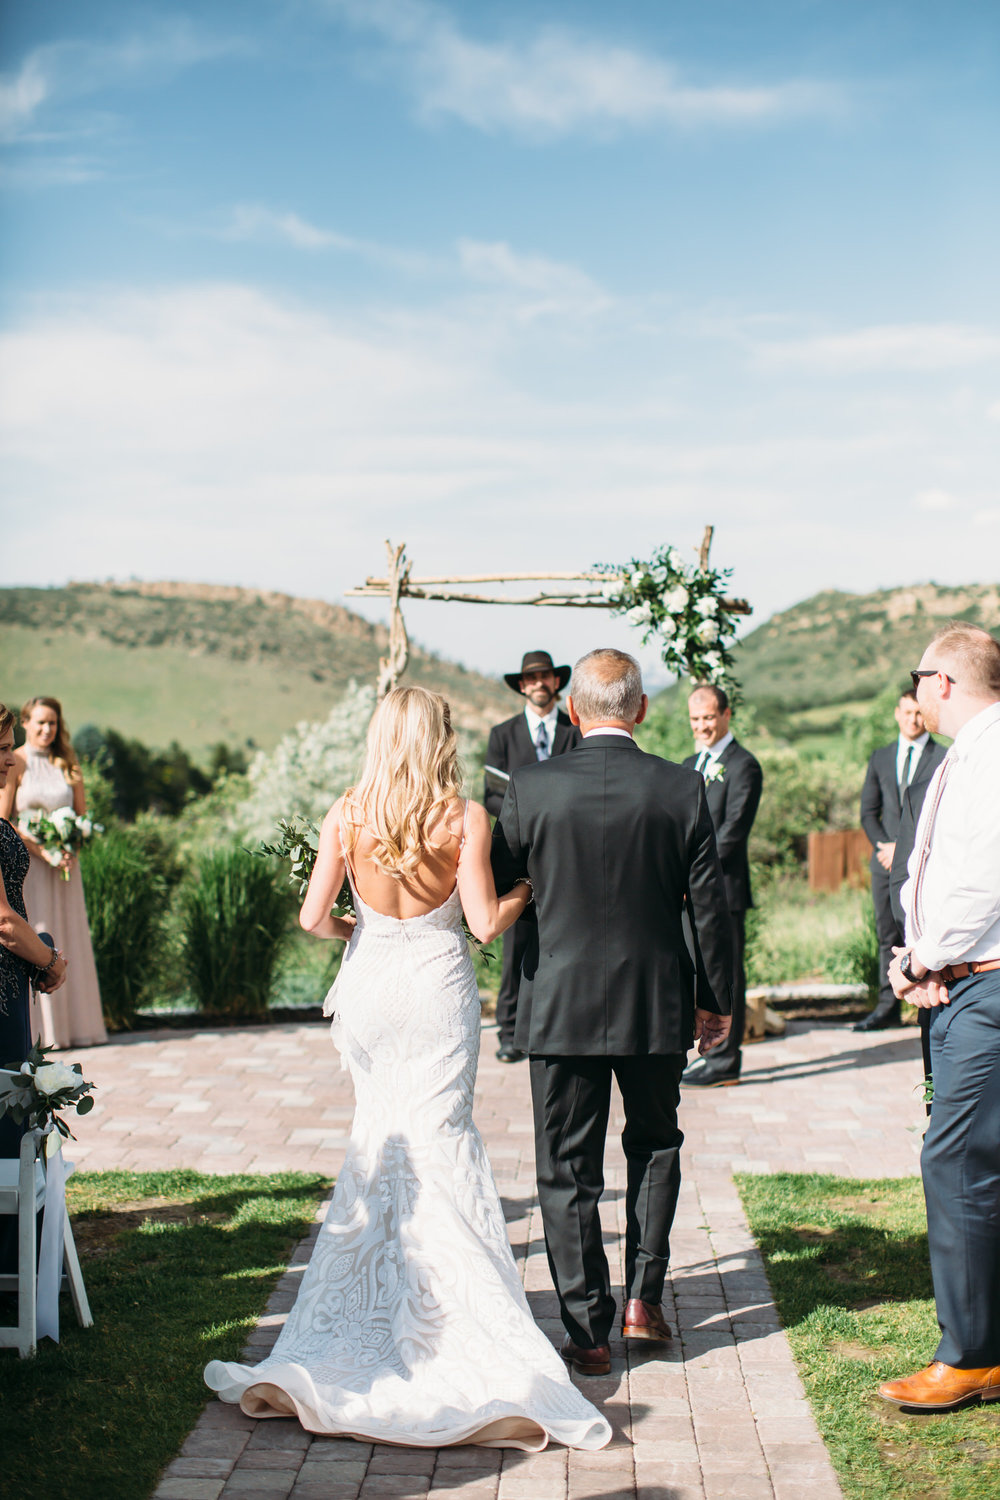 Mountain wedding, Denver Colorado wedding photographer, bride walking down aisle